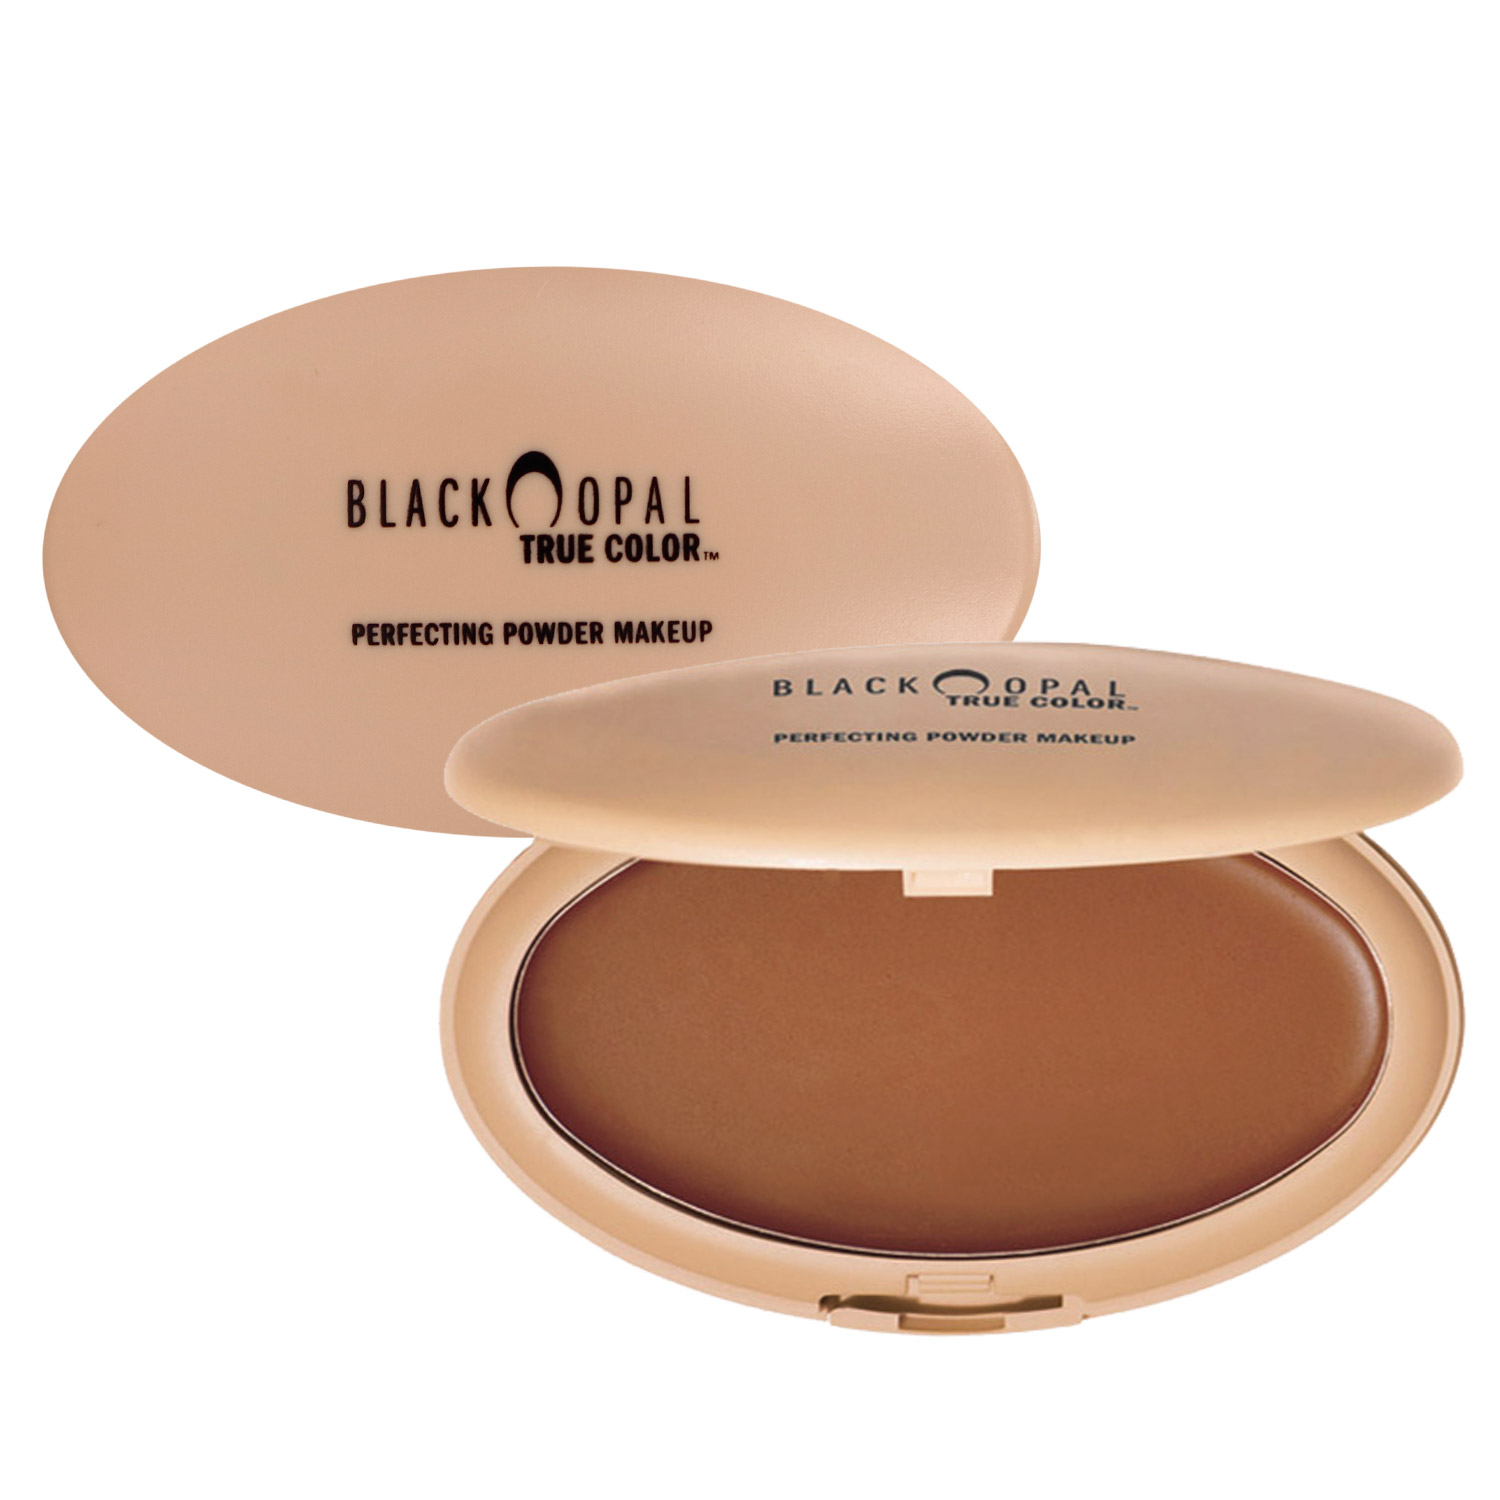 Amazon.com: Customer reviews: Black Opal Perfecting Powder ...